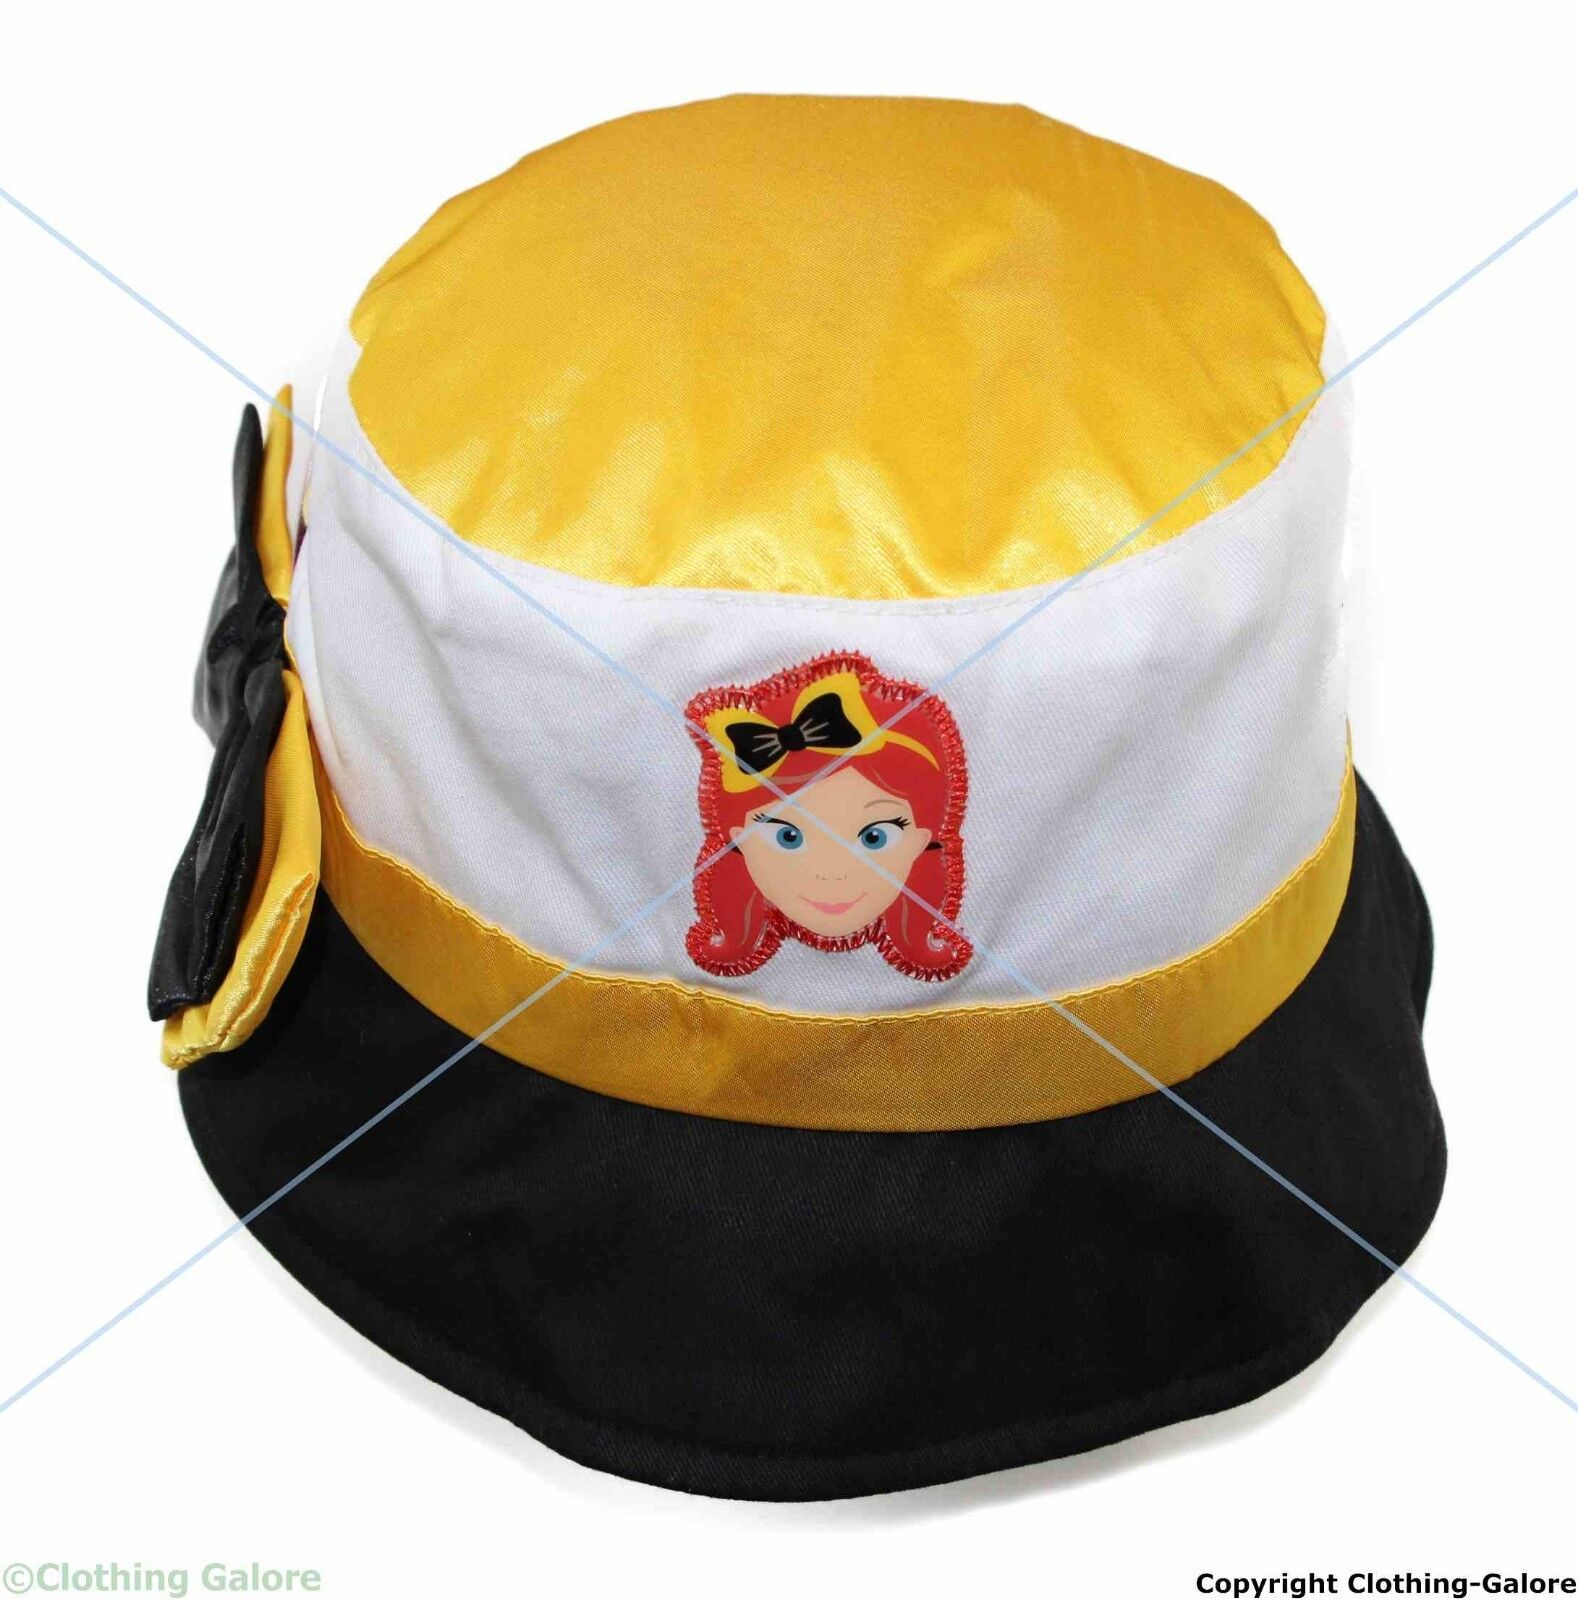 The Wiggles EMMA HAT with Bow - Cap 100% Cotton Summer Beach Bucket ... bf4d64ca1bb